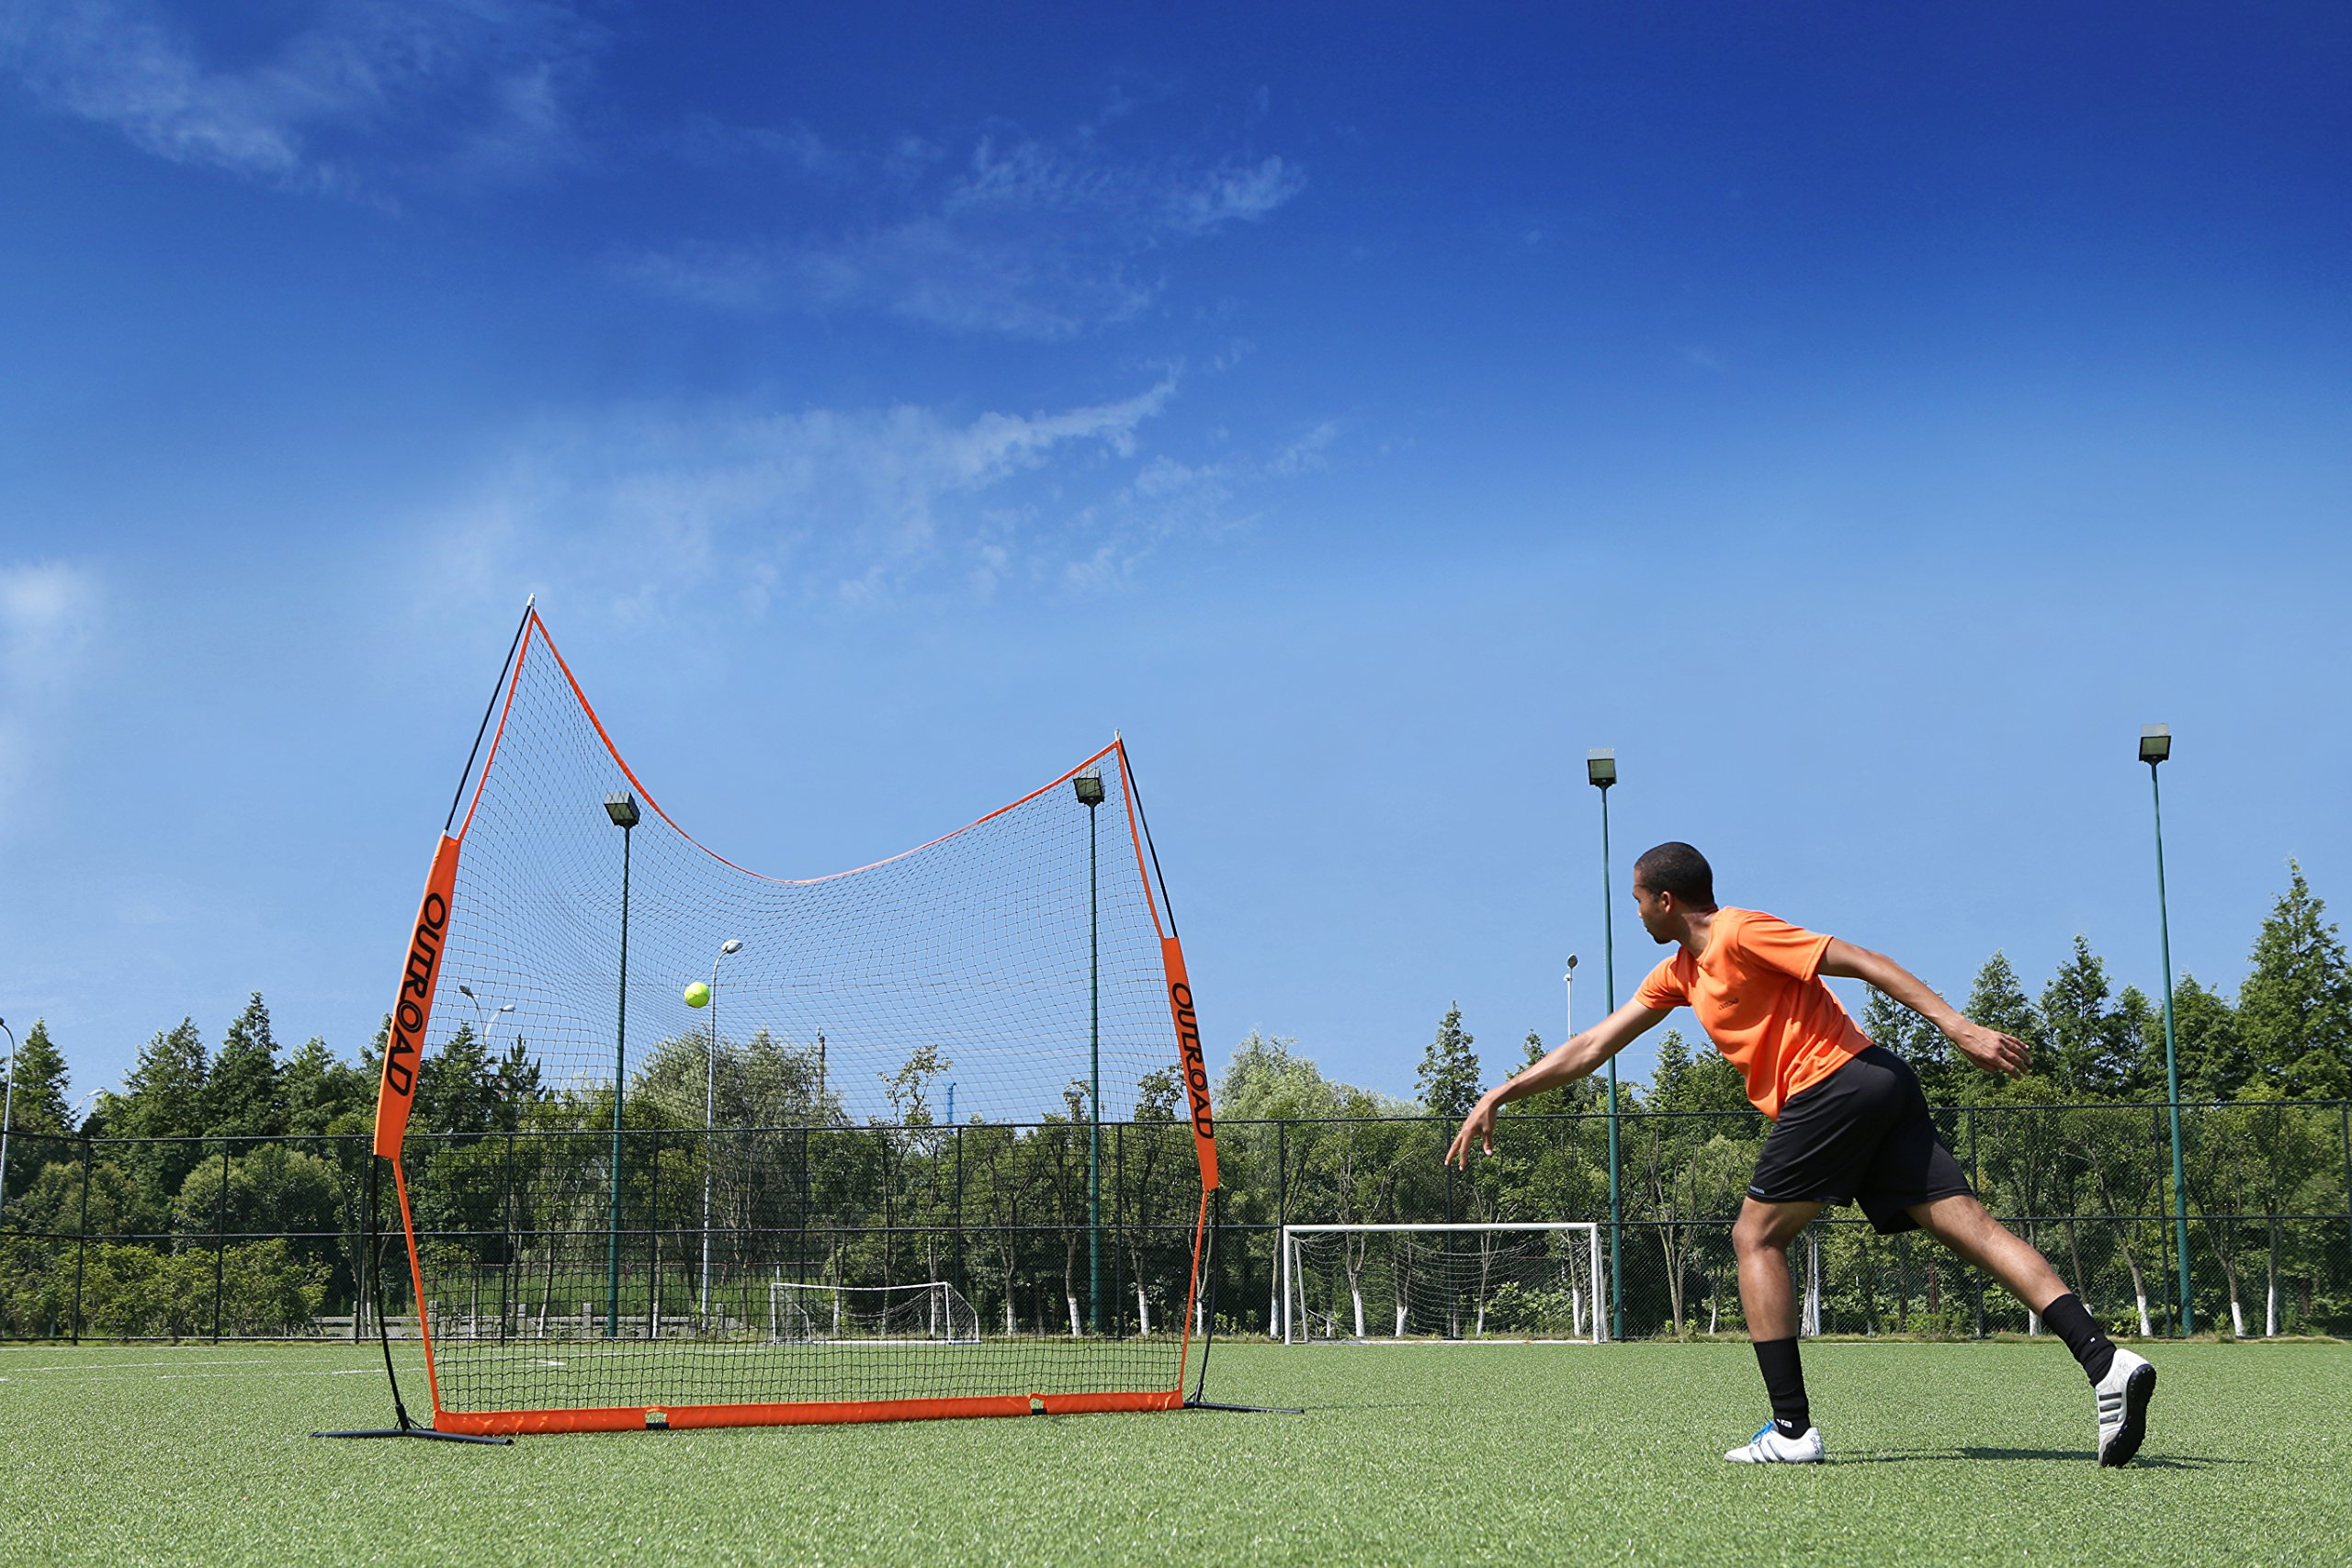 OUTROAD 12x9 FT Barrier Net - Portable Sports Barricade Practice Backstop Net w/ Carry Bag by OUTROAD (Image #4)